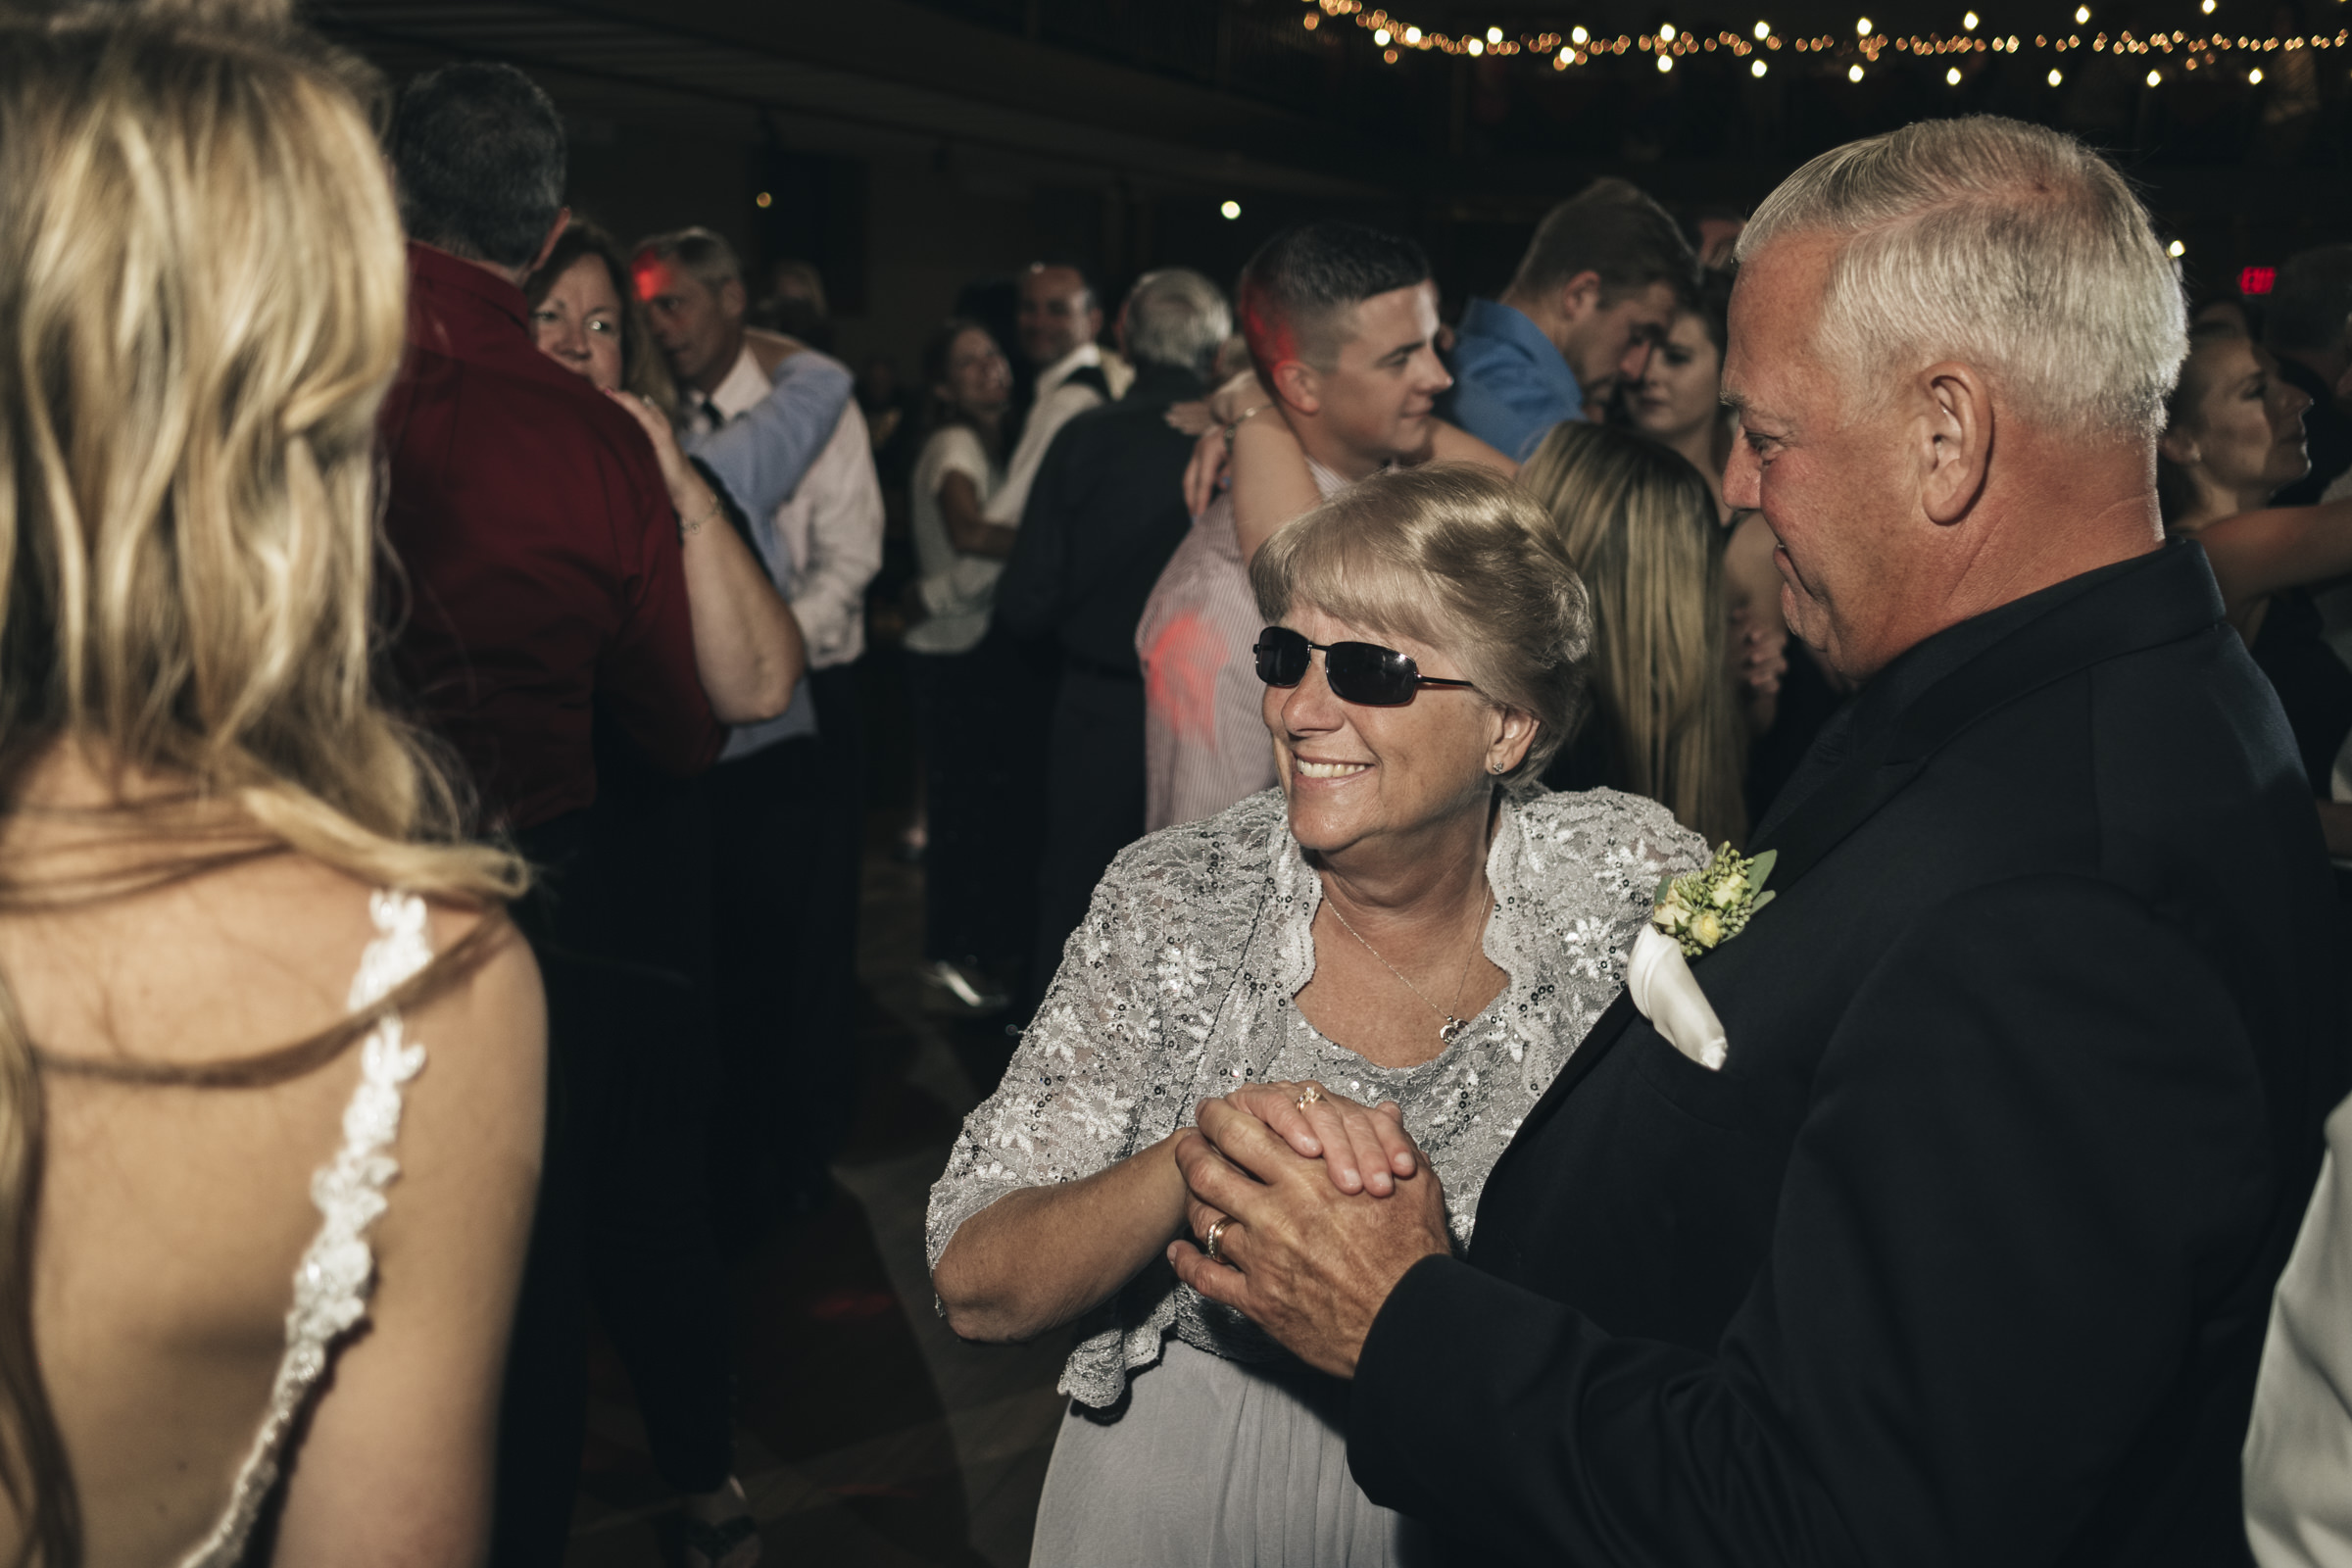 Bride dances with her husband and new in-laws at wedding reception